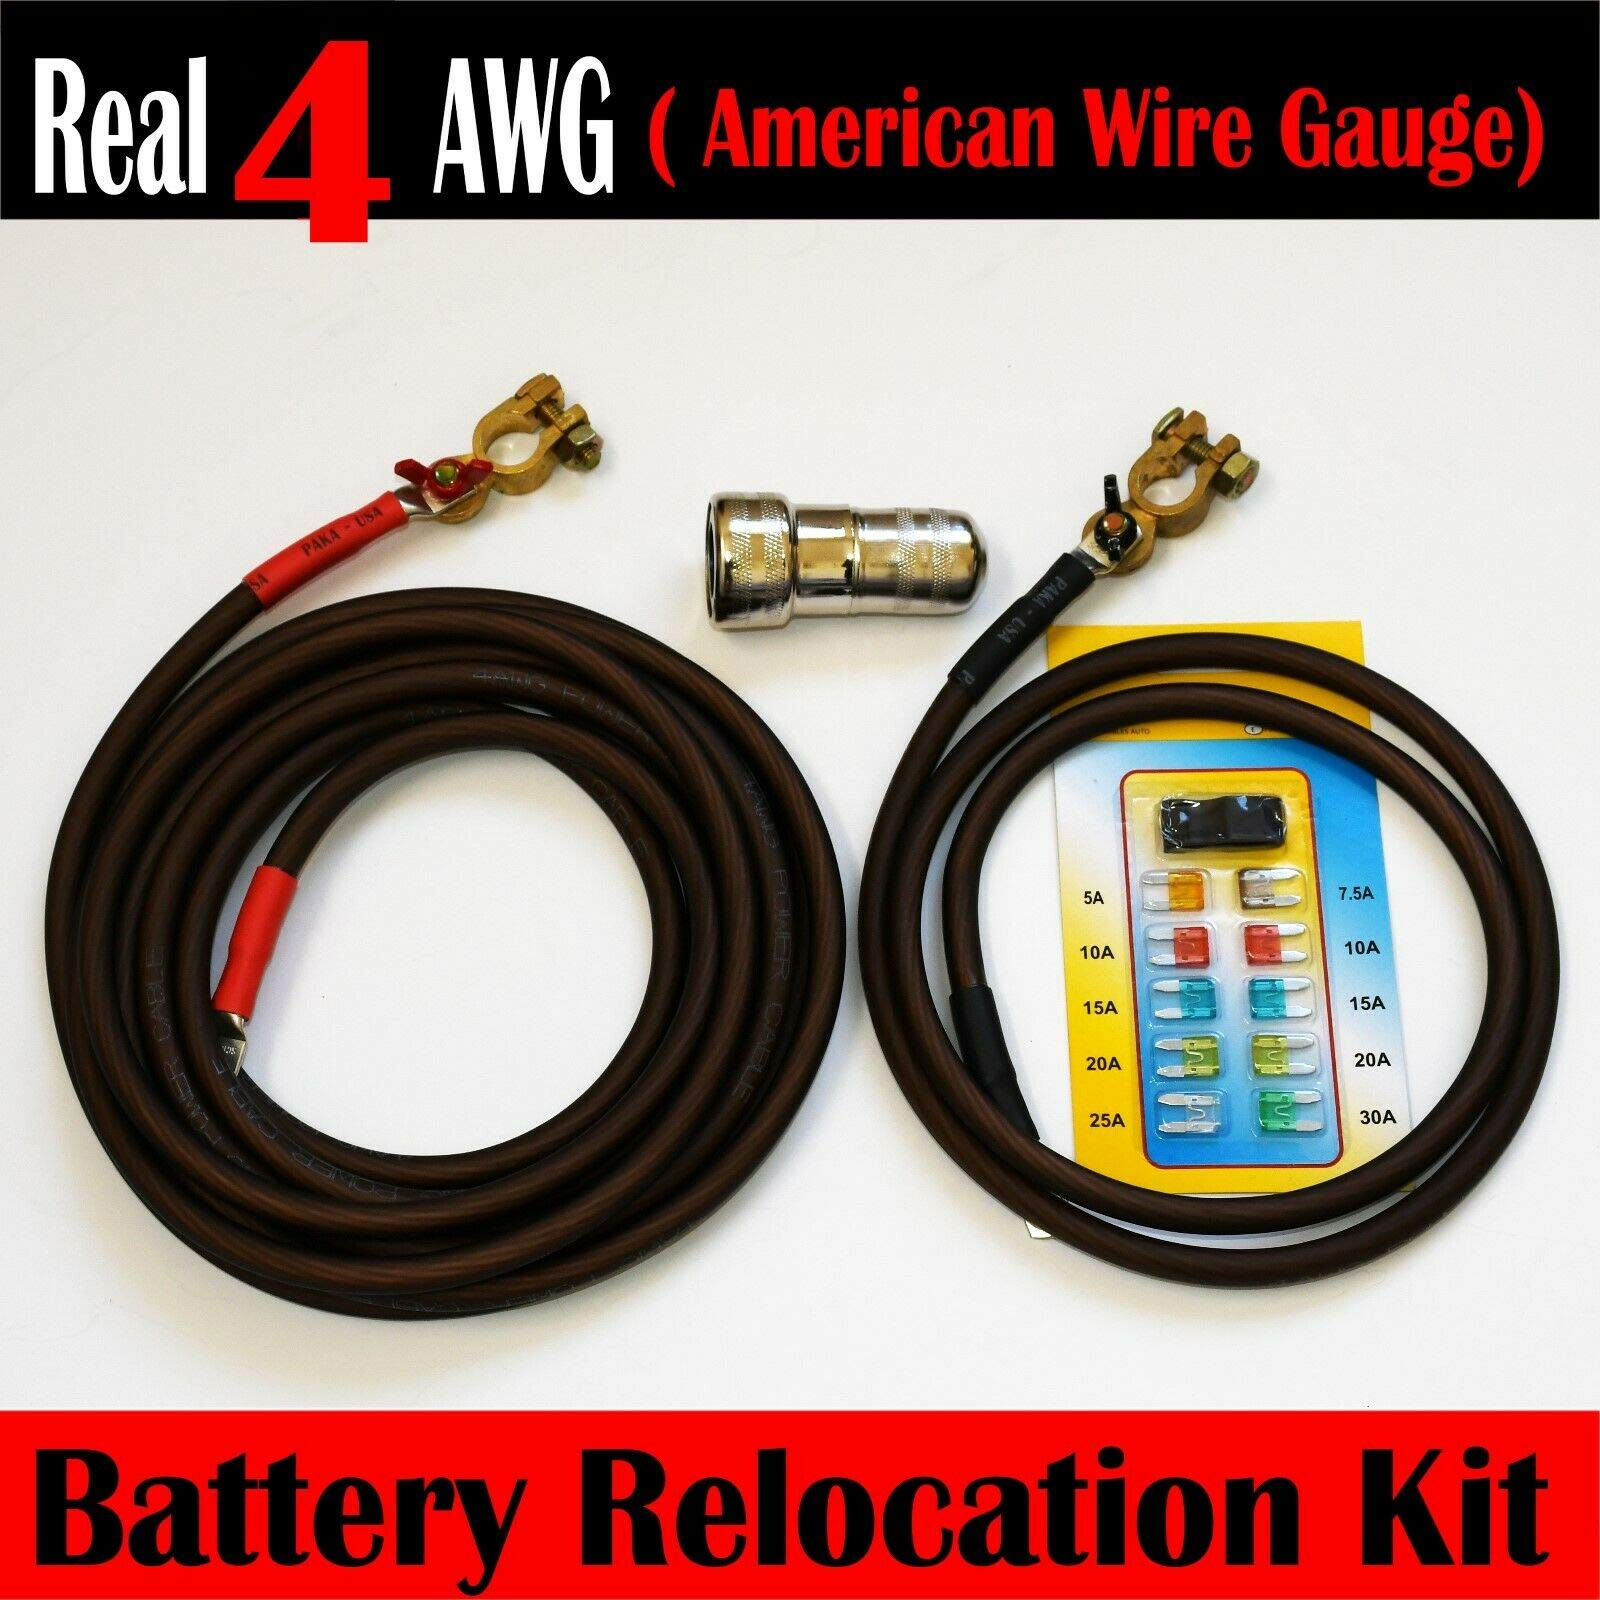 Battery Relocation Kit, Real # 4 AWG Cable, Top Post 20 FT RED/ 5 FT BLACK by PAKA TOOLS